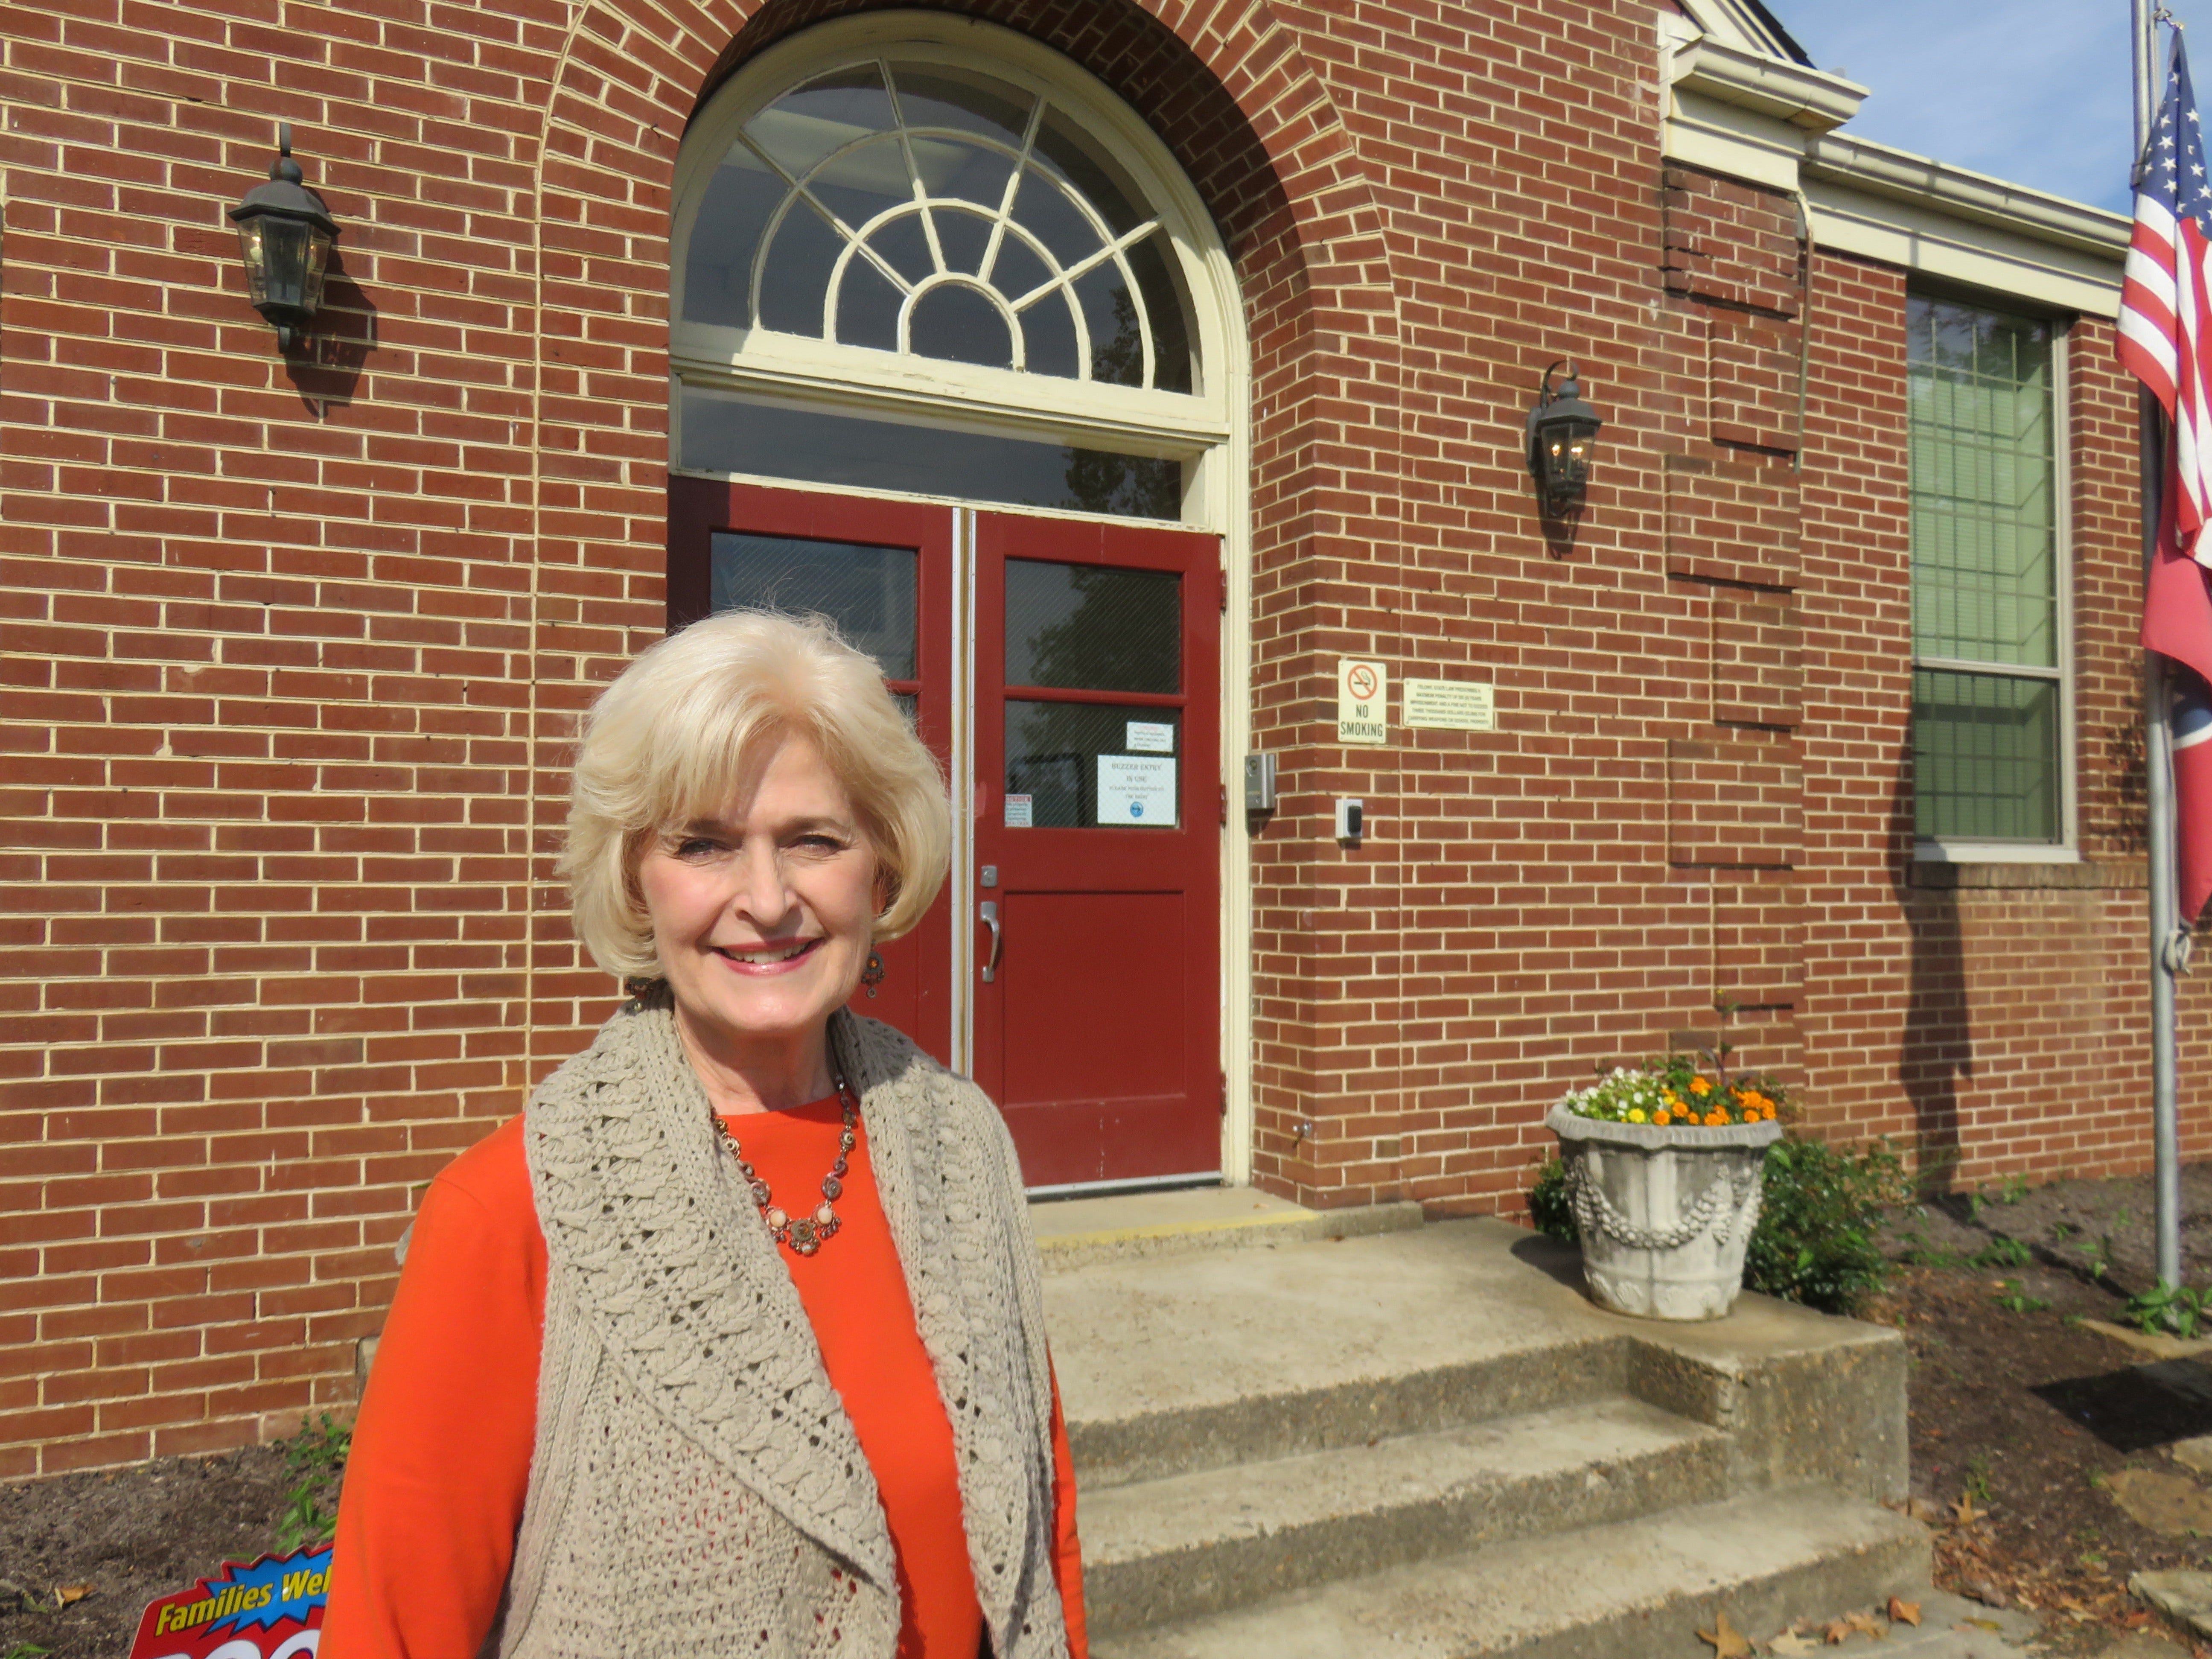 Principal Susan Dunlap outside Bearden Elementary on Oct. 31. The school is planning an 80th anniversary celebration on Nov. 15, 2018.